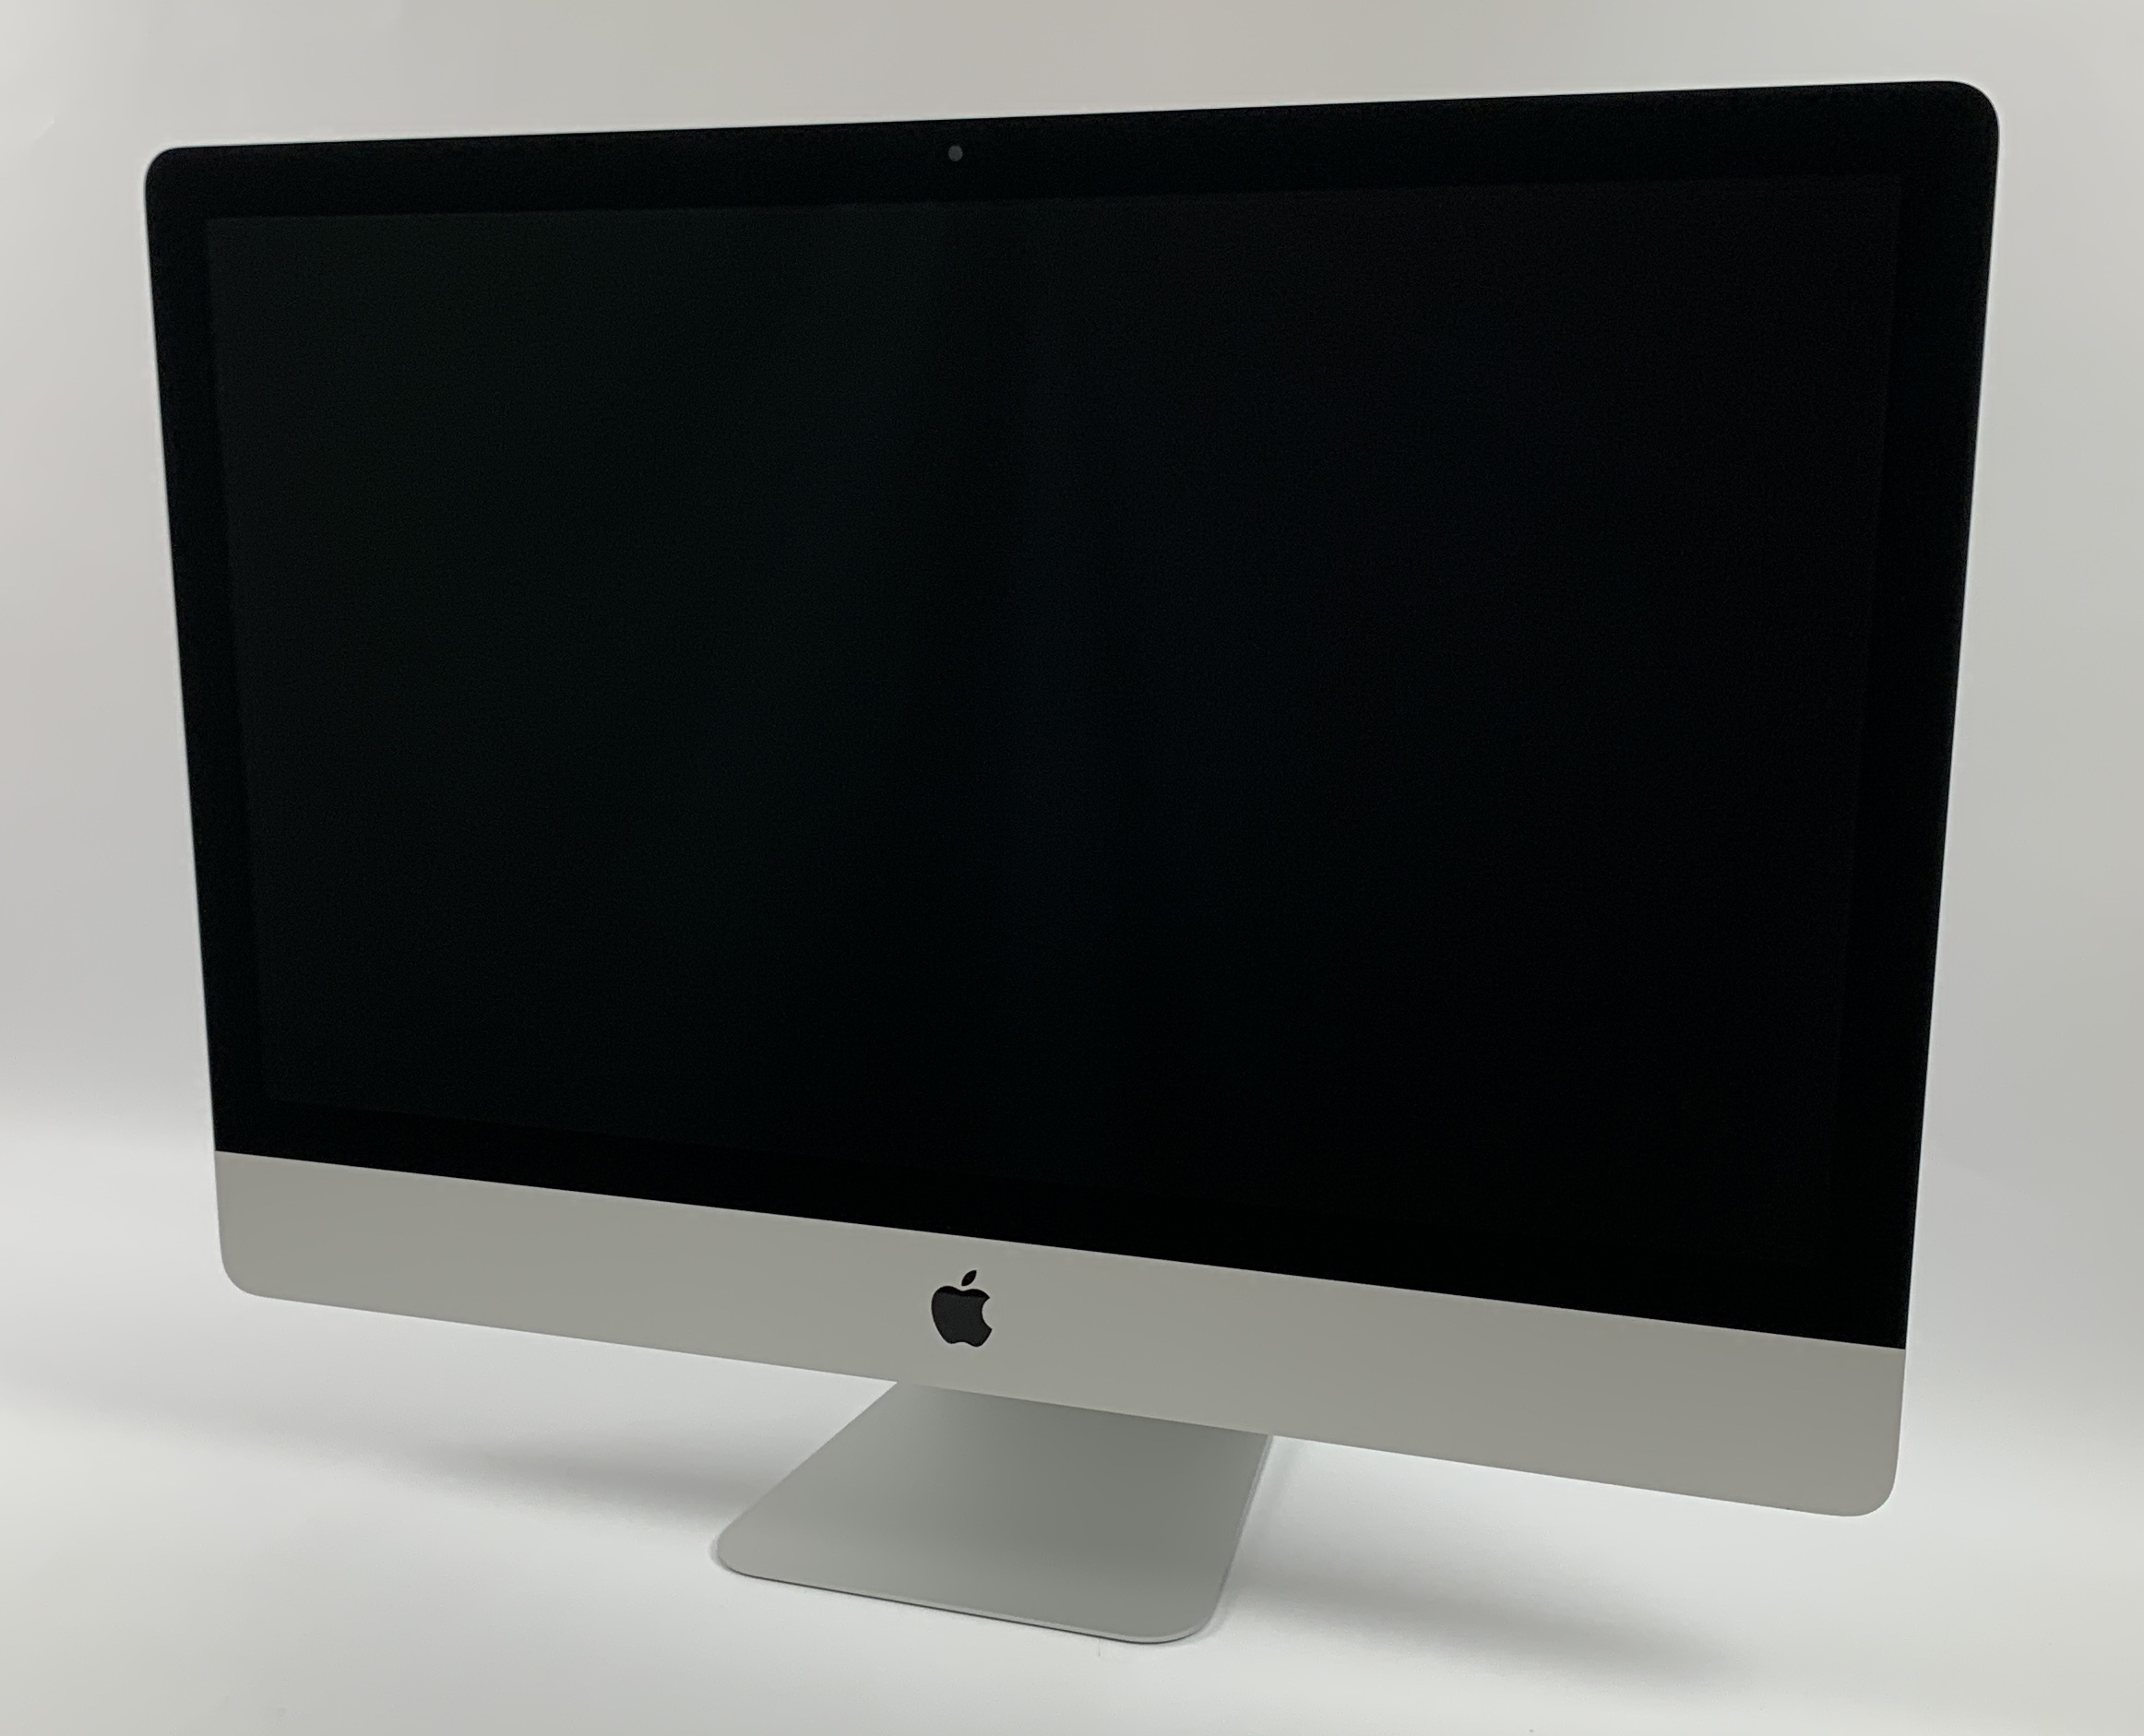 "iMac 27"" Retina 5K Mid 2020 (Intel 6-Core i5 3.1 GHz 128 GB RAM 256 GB SSD), Intel 6-Core i5 3.1 GHz, 128 GB RAM, 256 GB SSD, Bild 1"